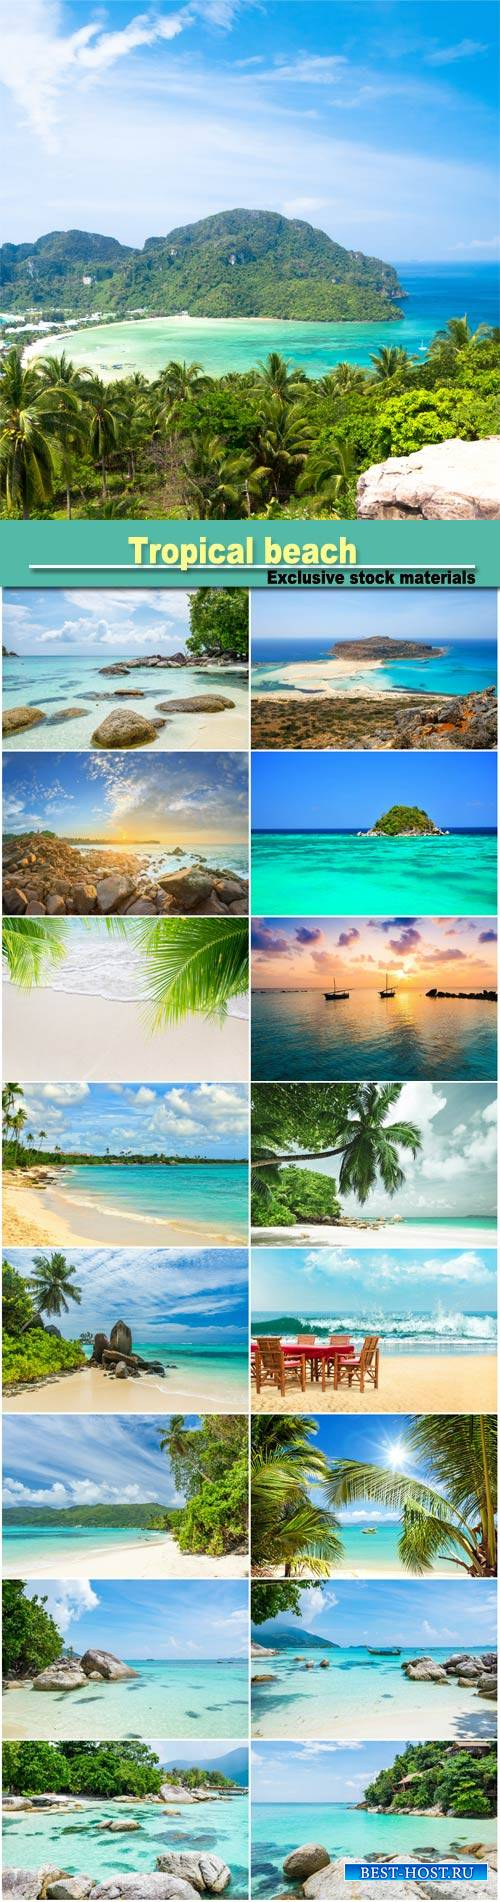 Tropical beach, crystal sea white sand beach at  island, Maldives, tropical ...